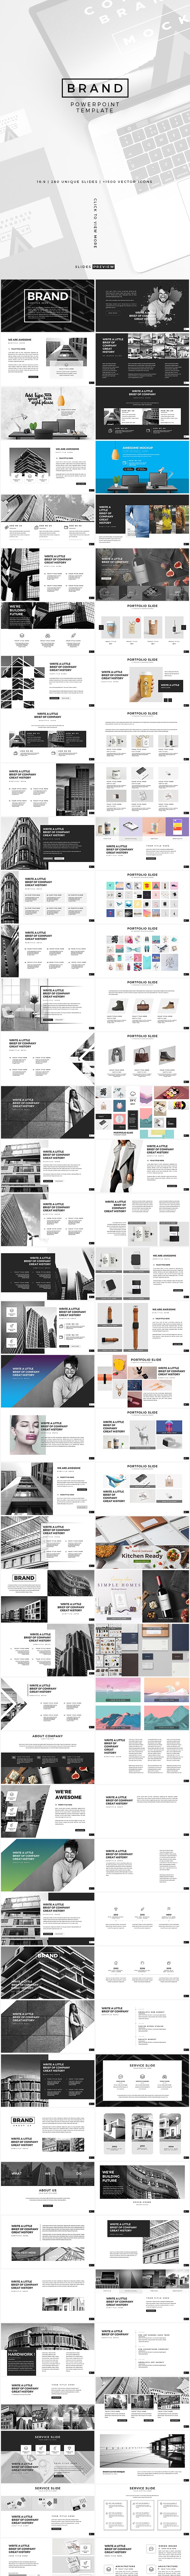 Brand PowerPoint Presentation Template - Creative PowerPoint Templates